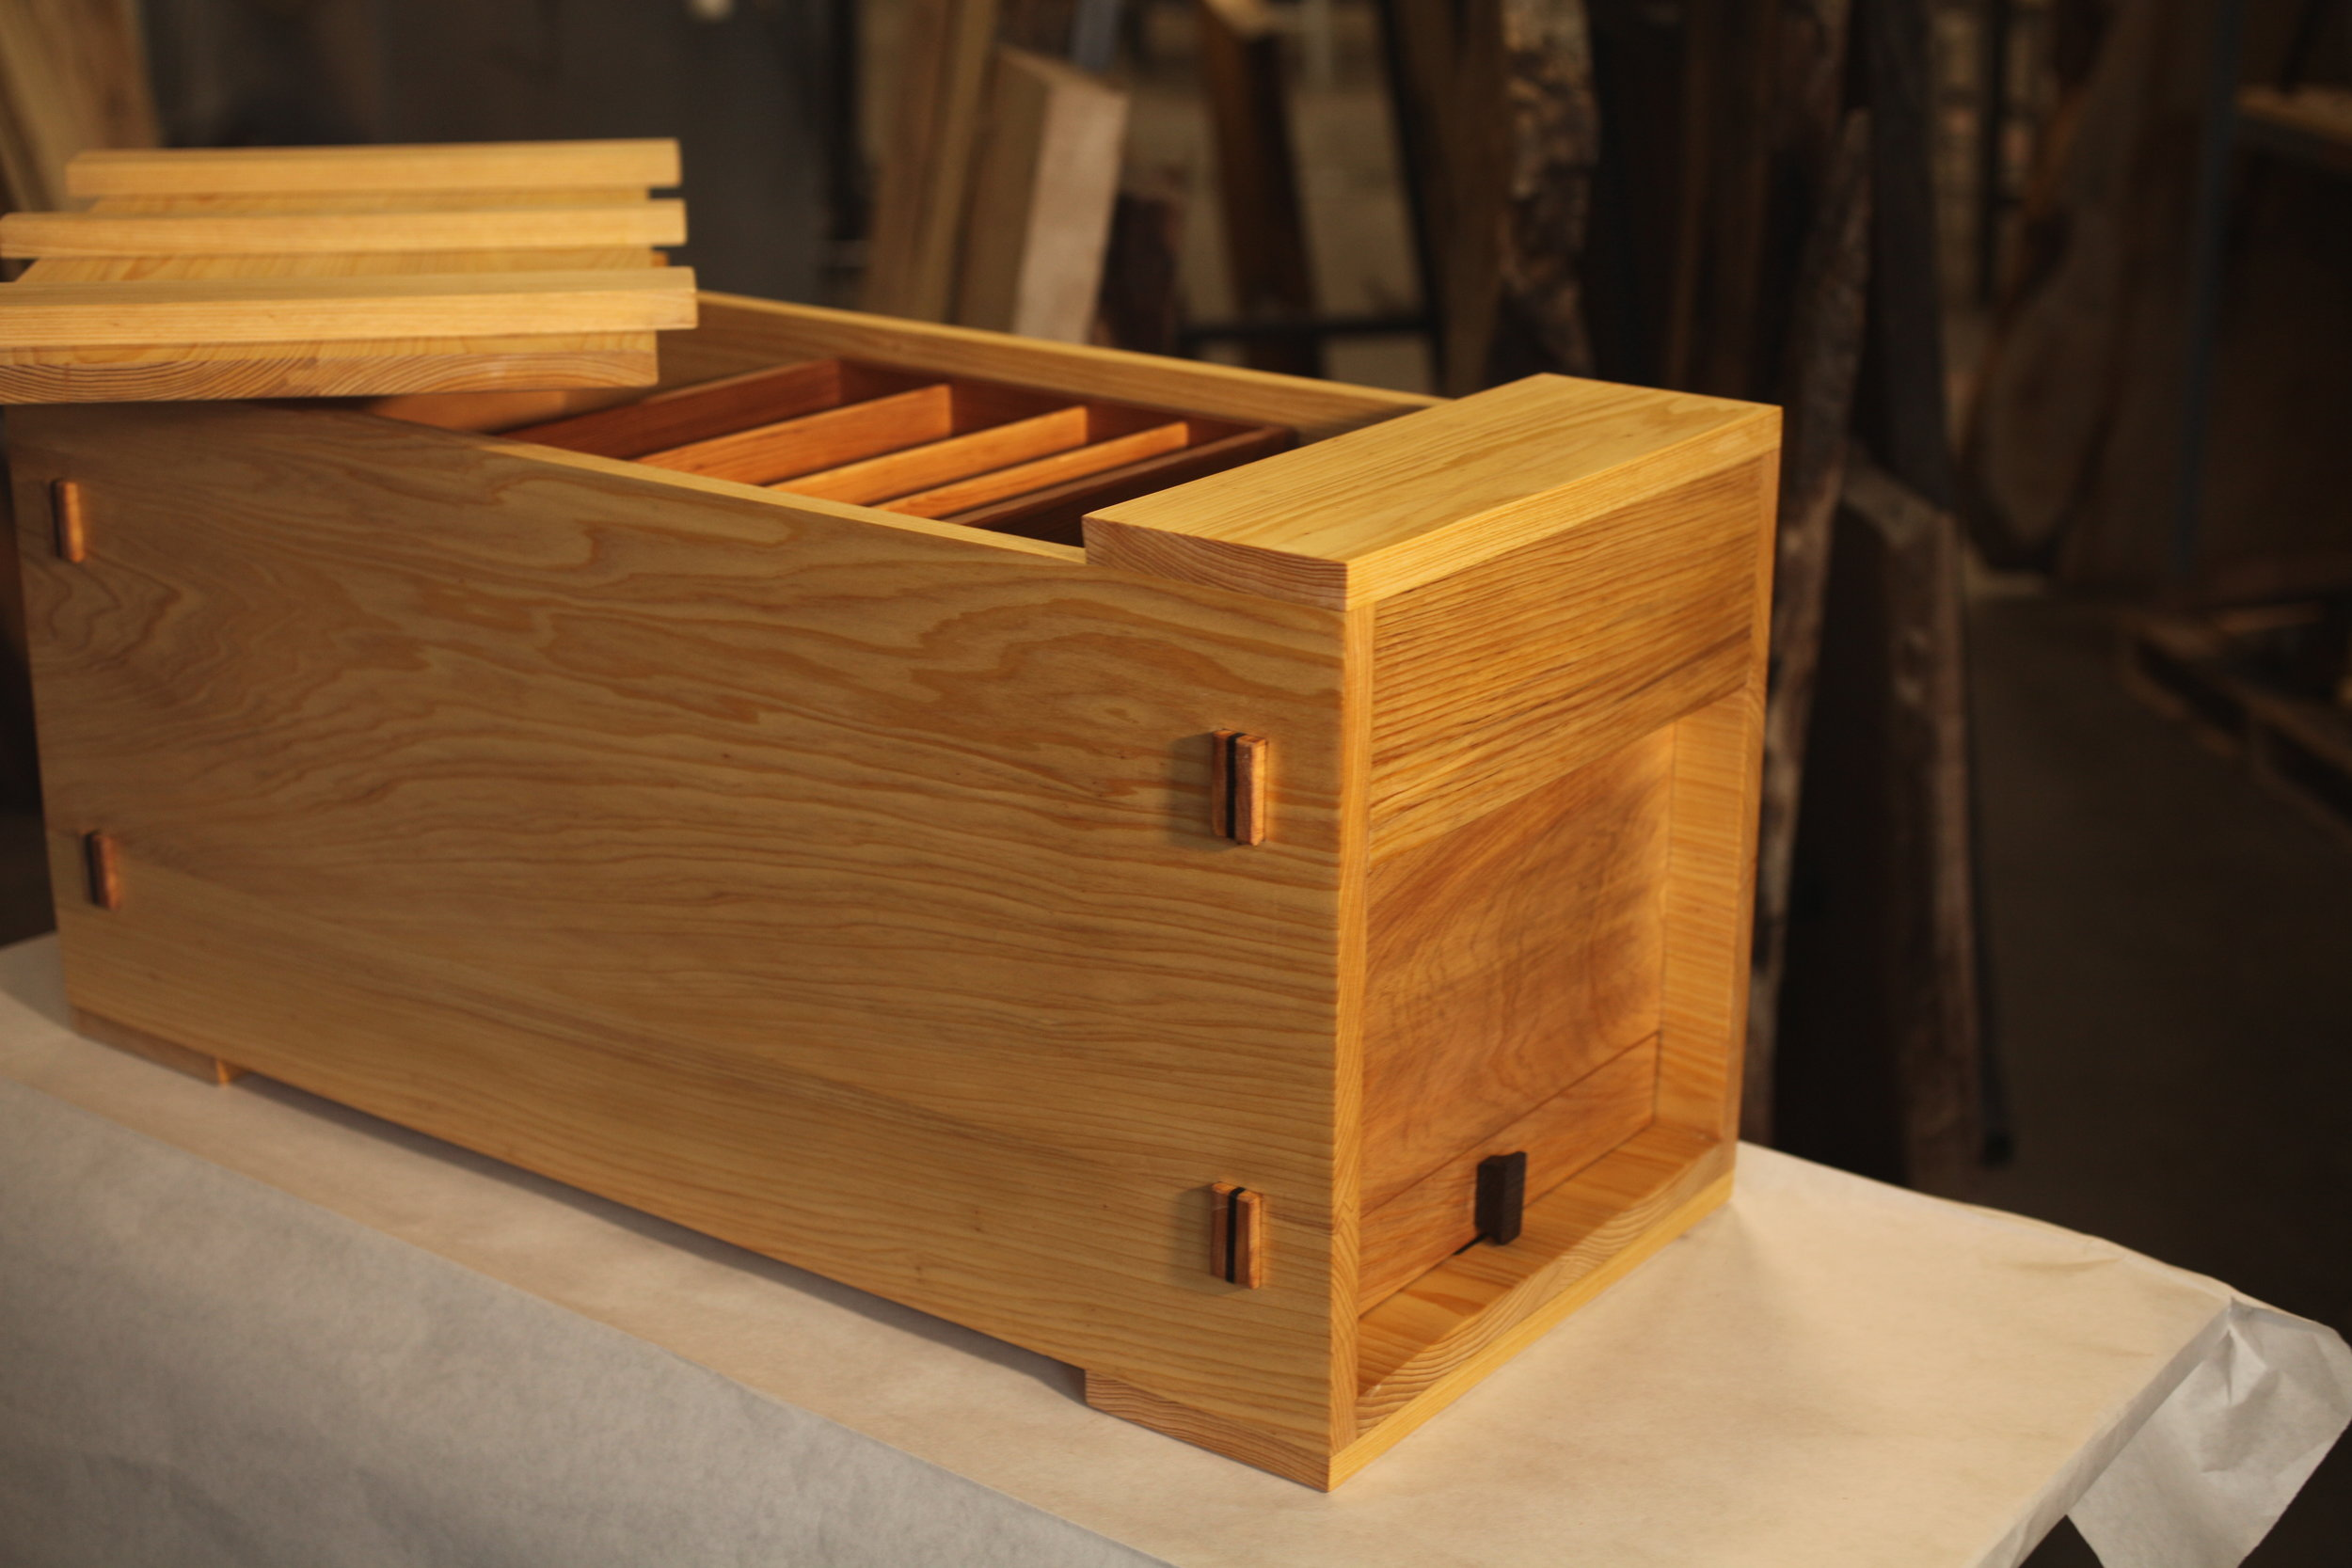 japanese-toolbox-finished-shot.jpg